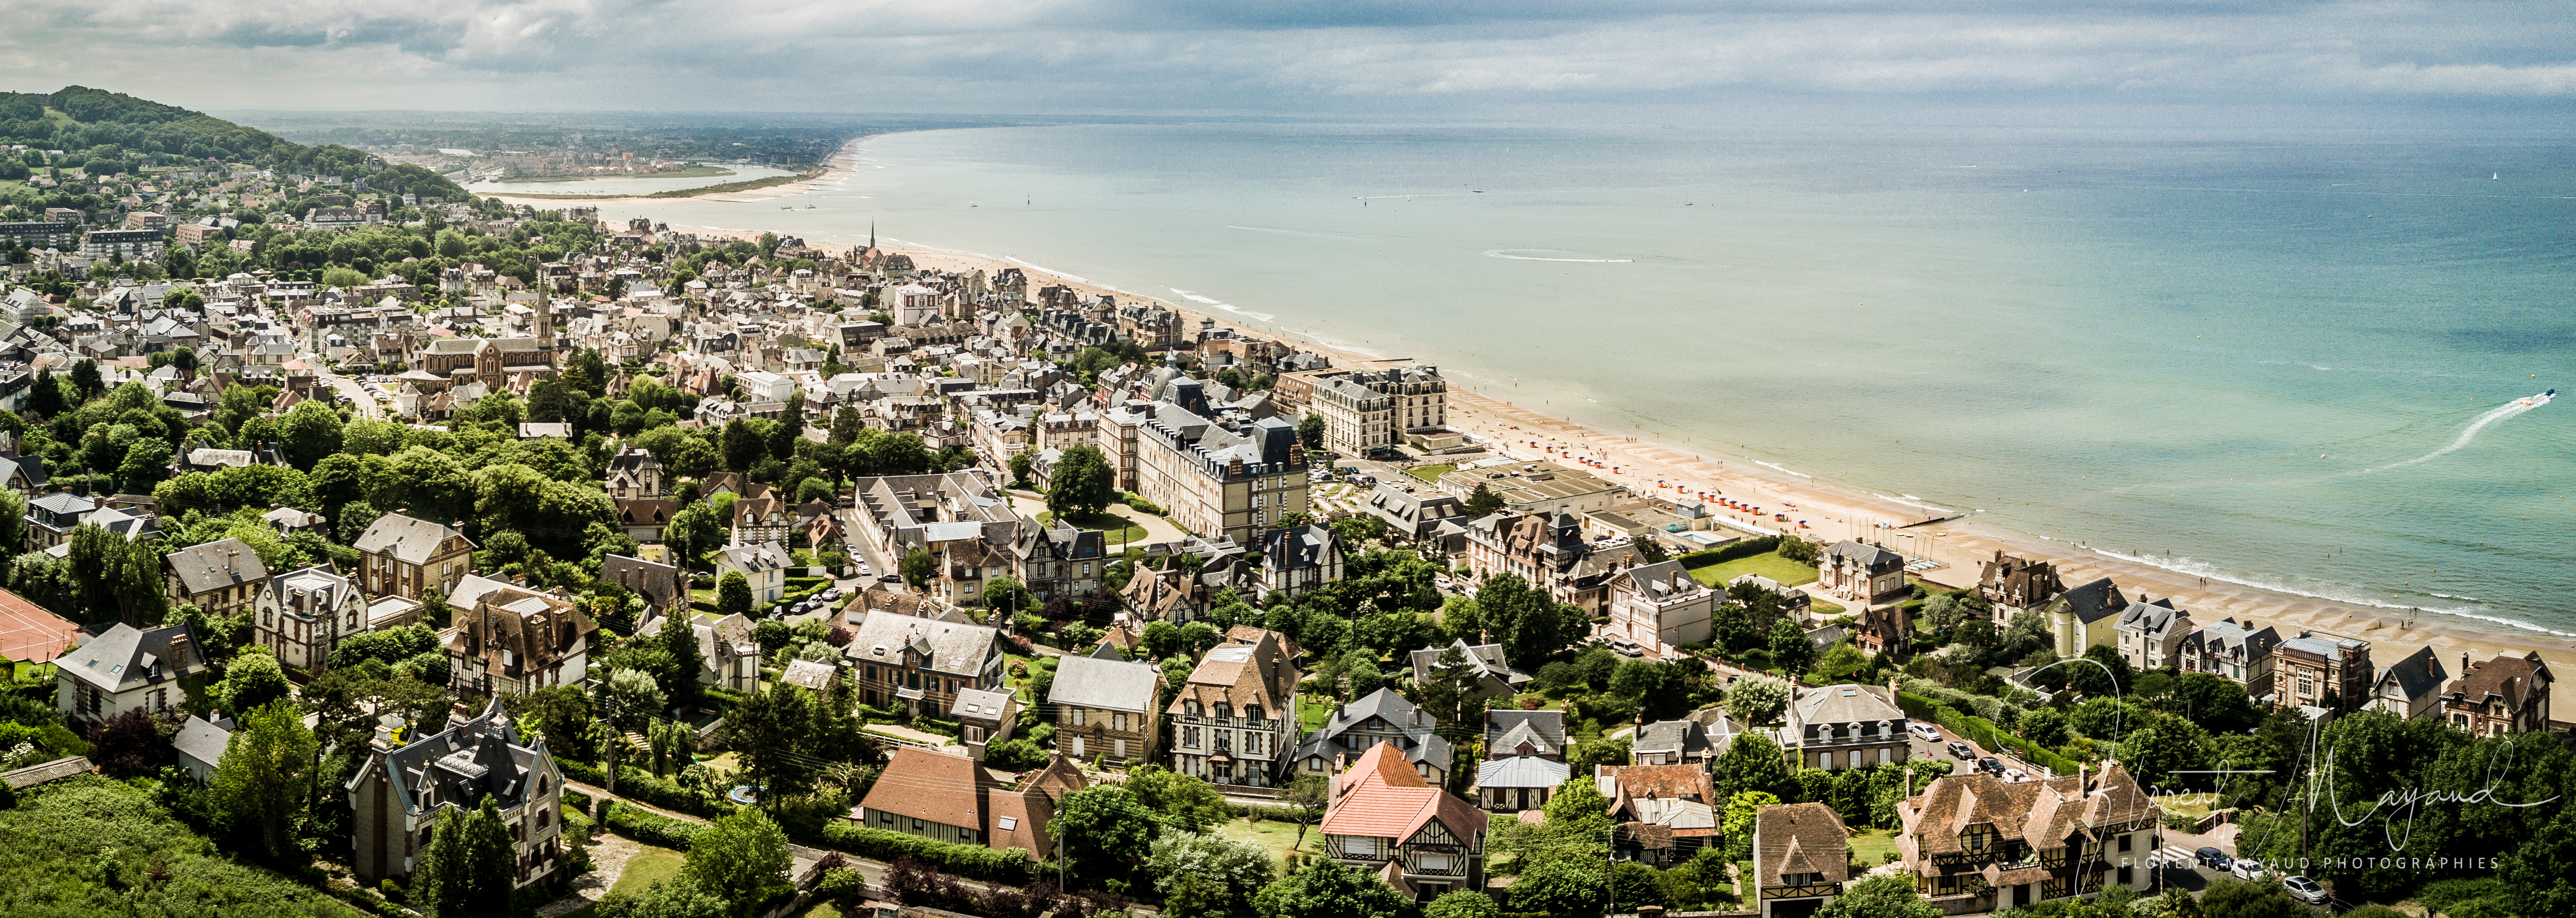 Houlgate, Cabourg, Dives-sur-Mer, Normandy, France